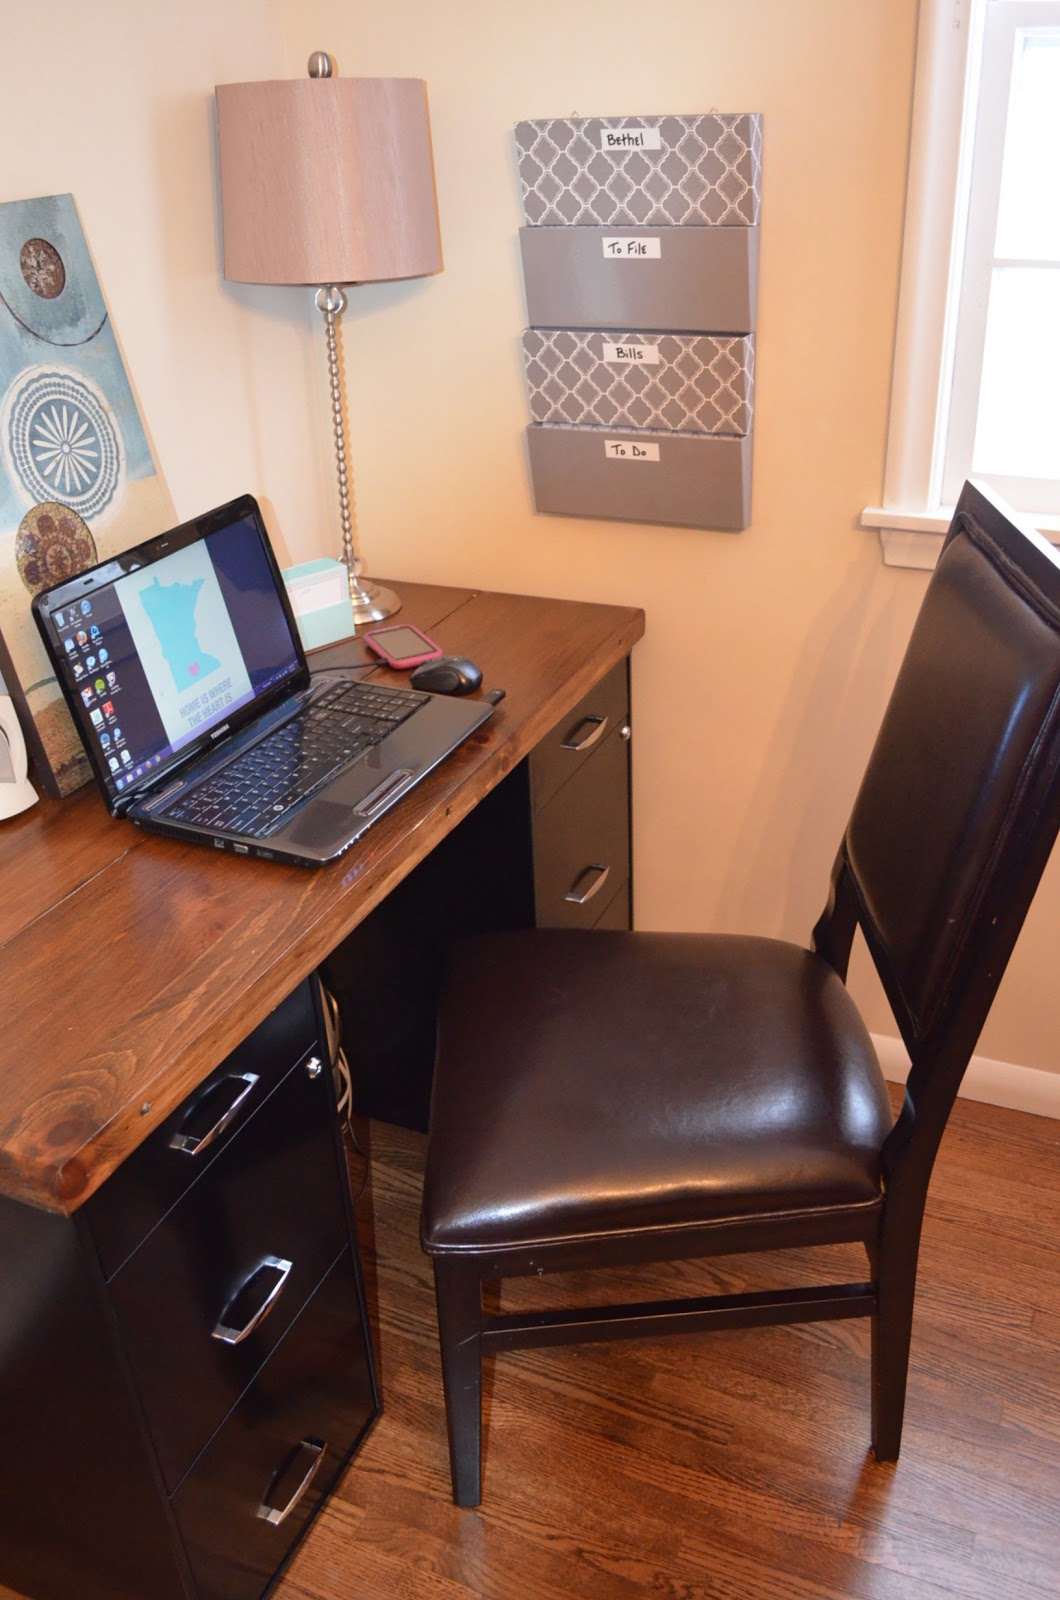 Desk Chair Diy Duncan Phyfe Dining Chairs For Sale An Inviting Home A